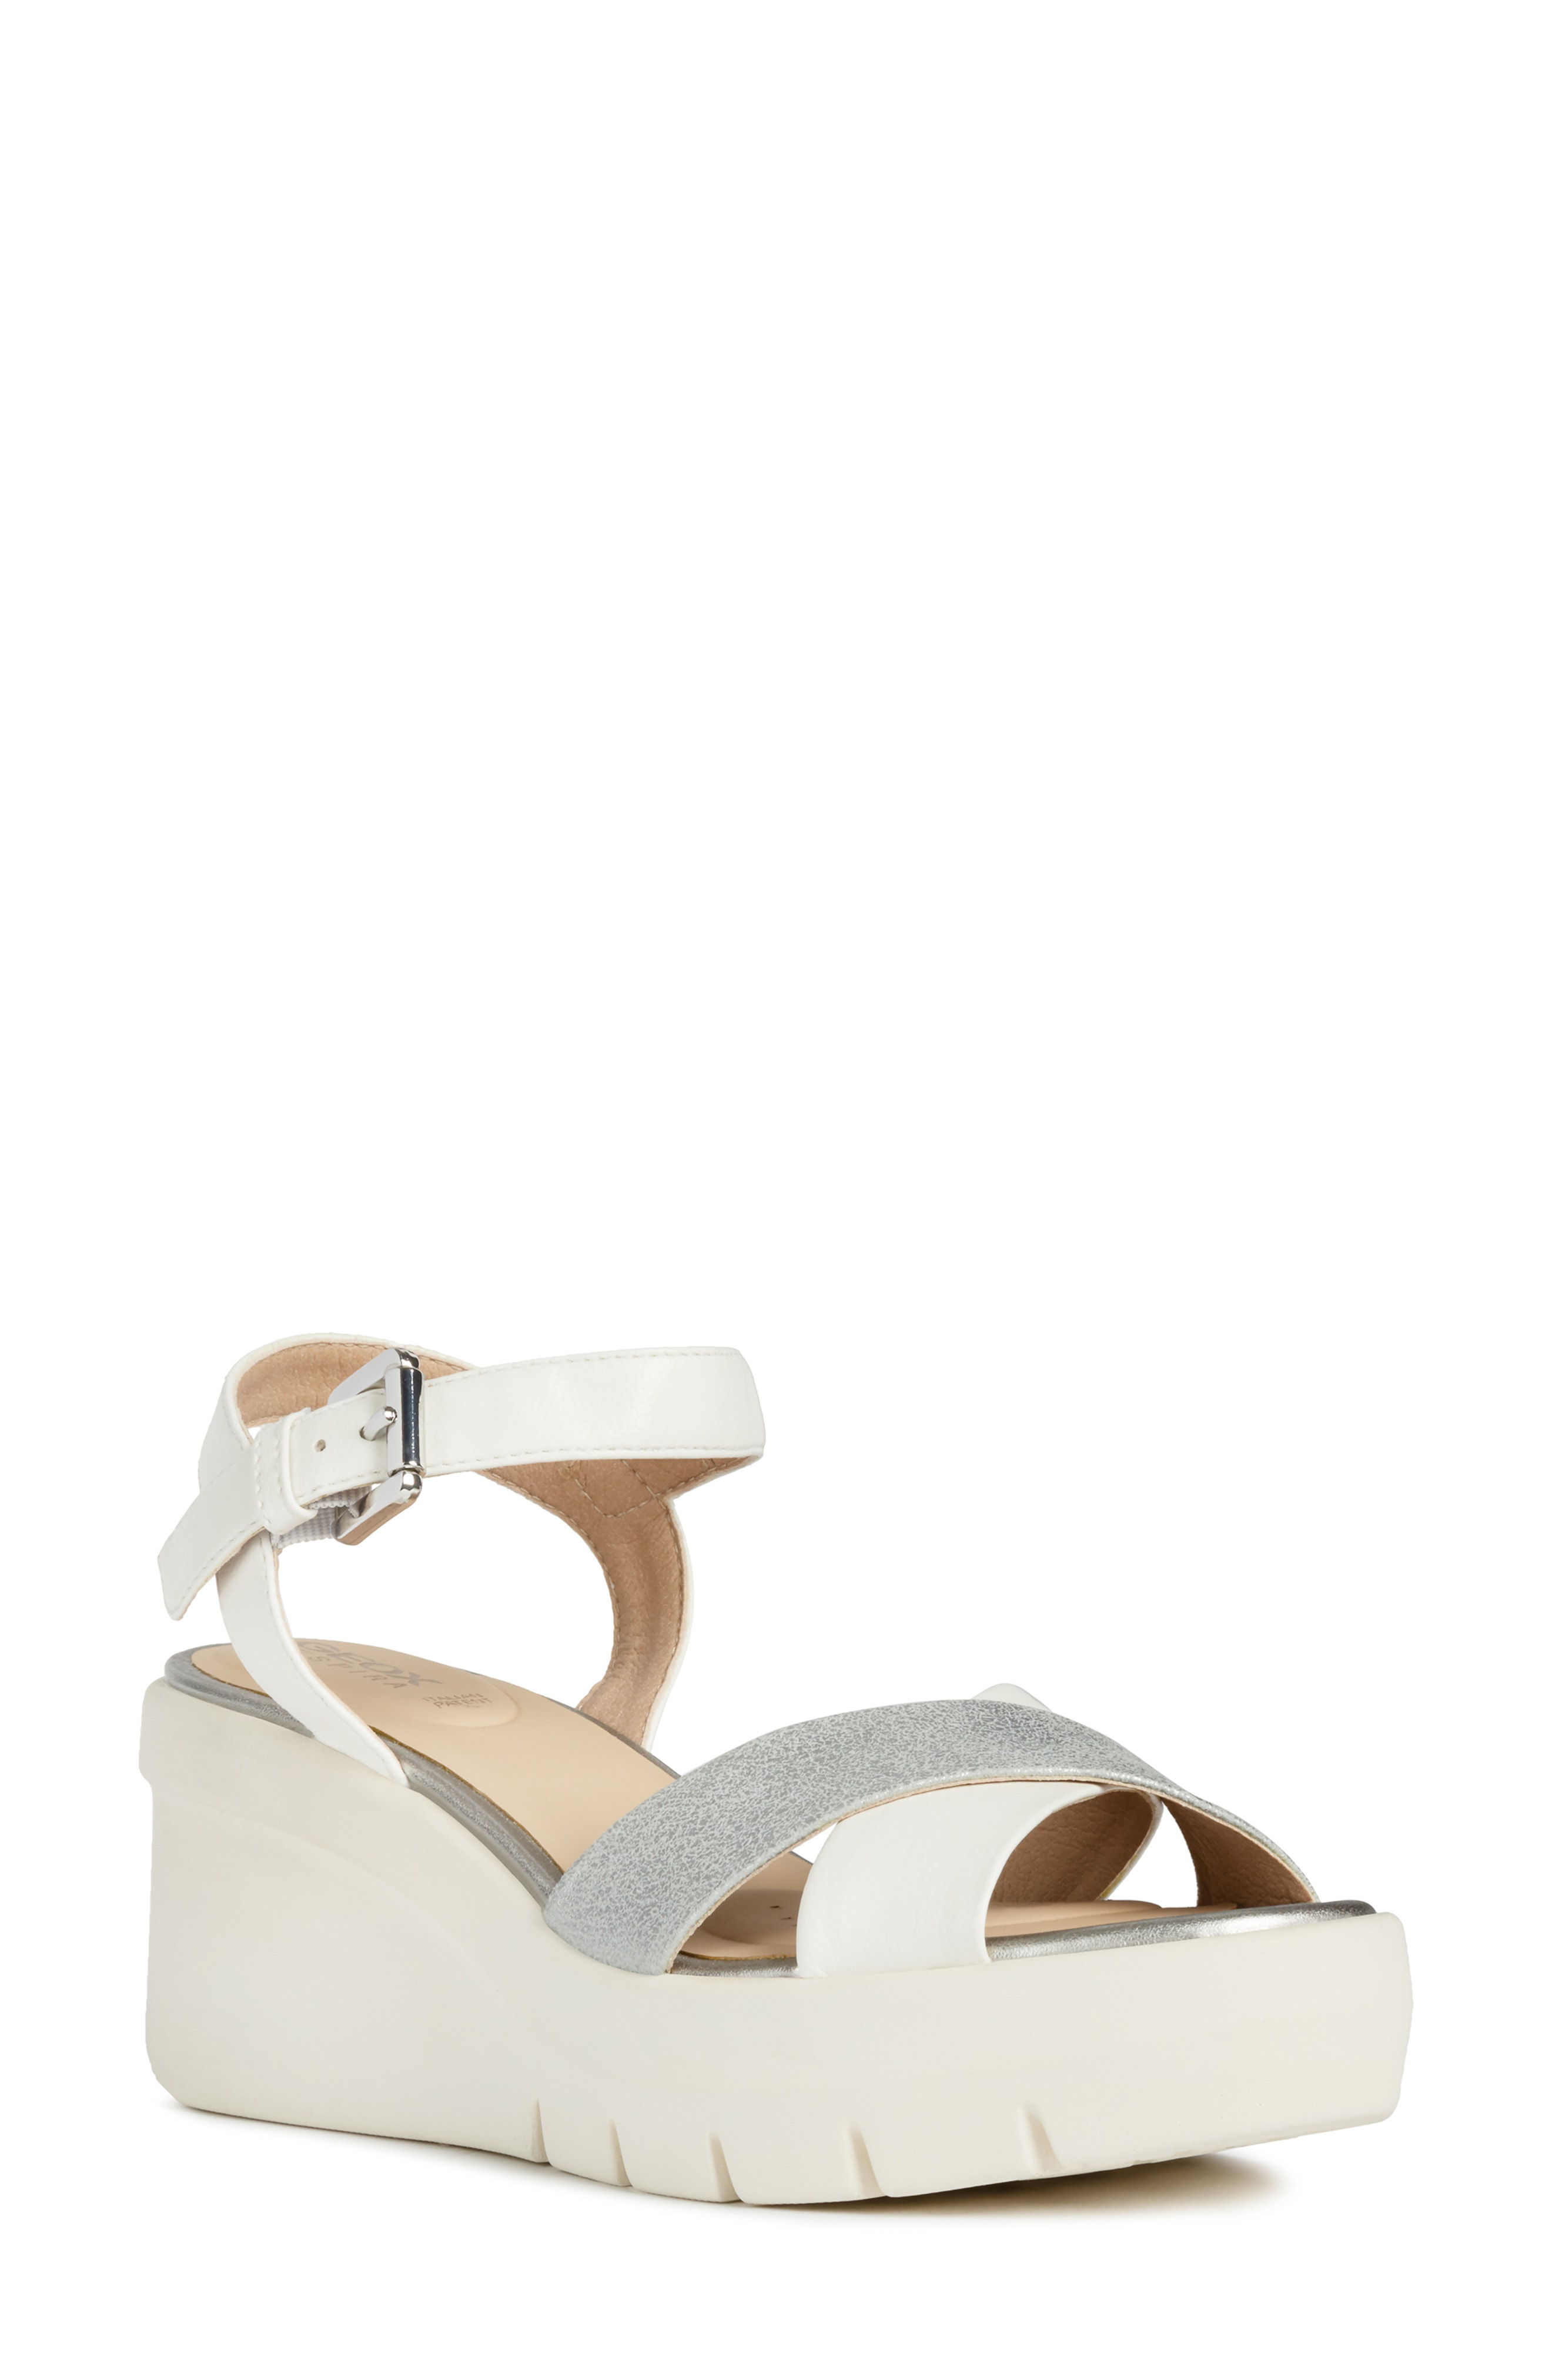 94898e36699 Geox Torrence Platform Sandal In White  Silver Faux Leather